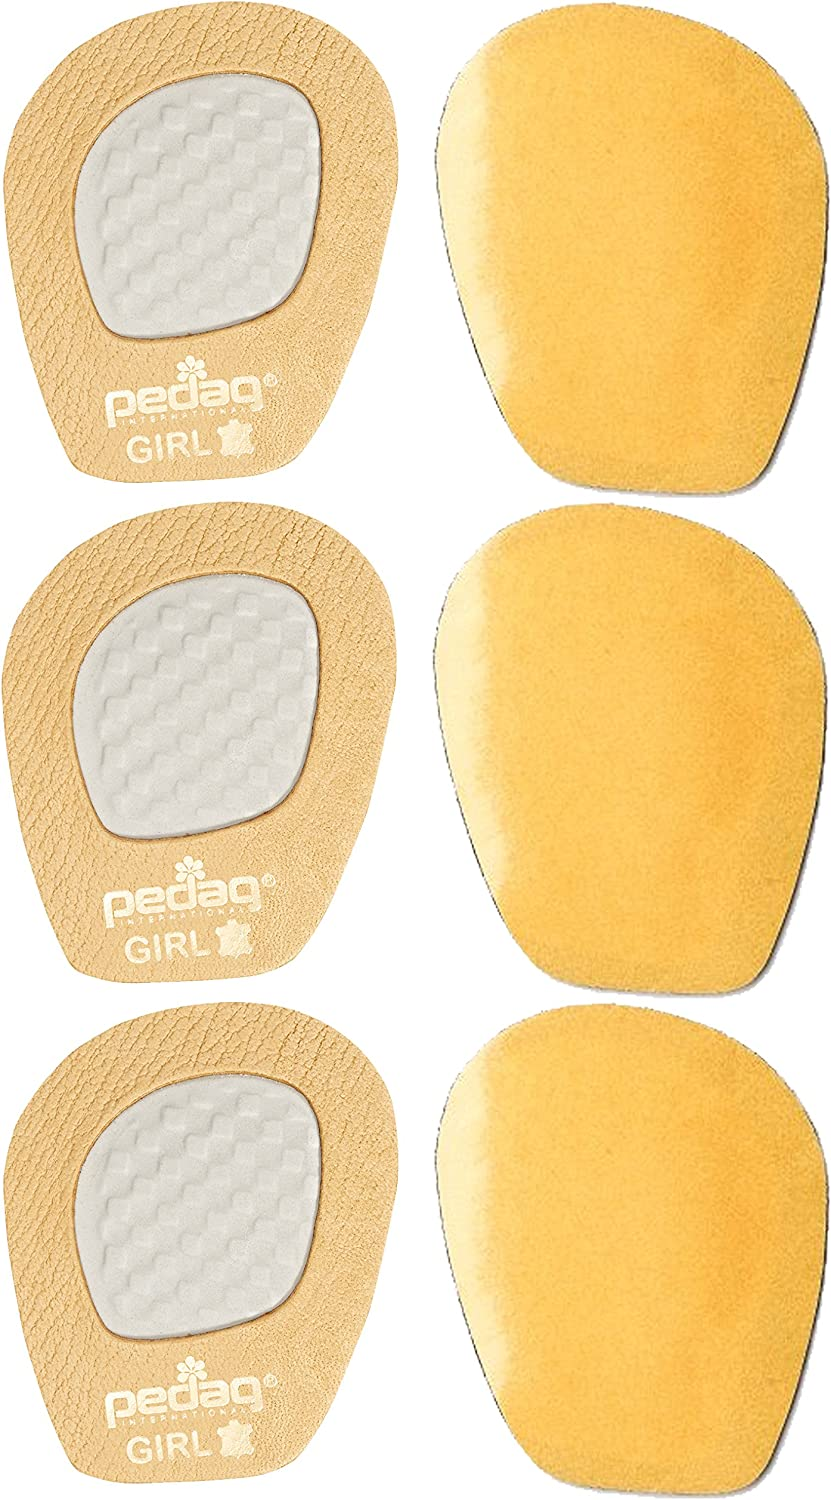 Pedag Fit Super Right Kit Stop Heel Grips Supra Tongue Pad S//M